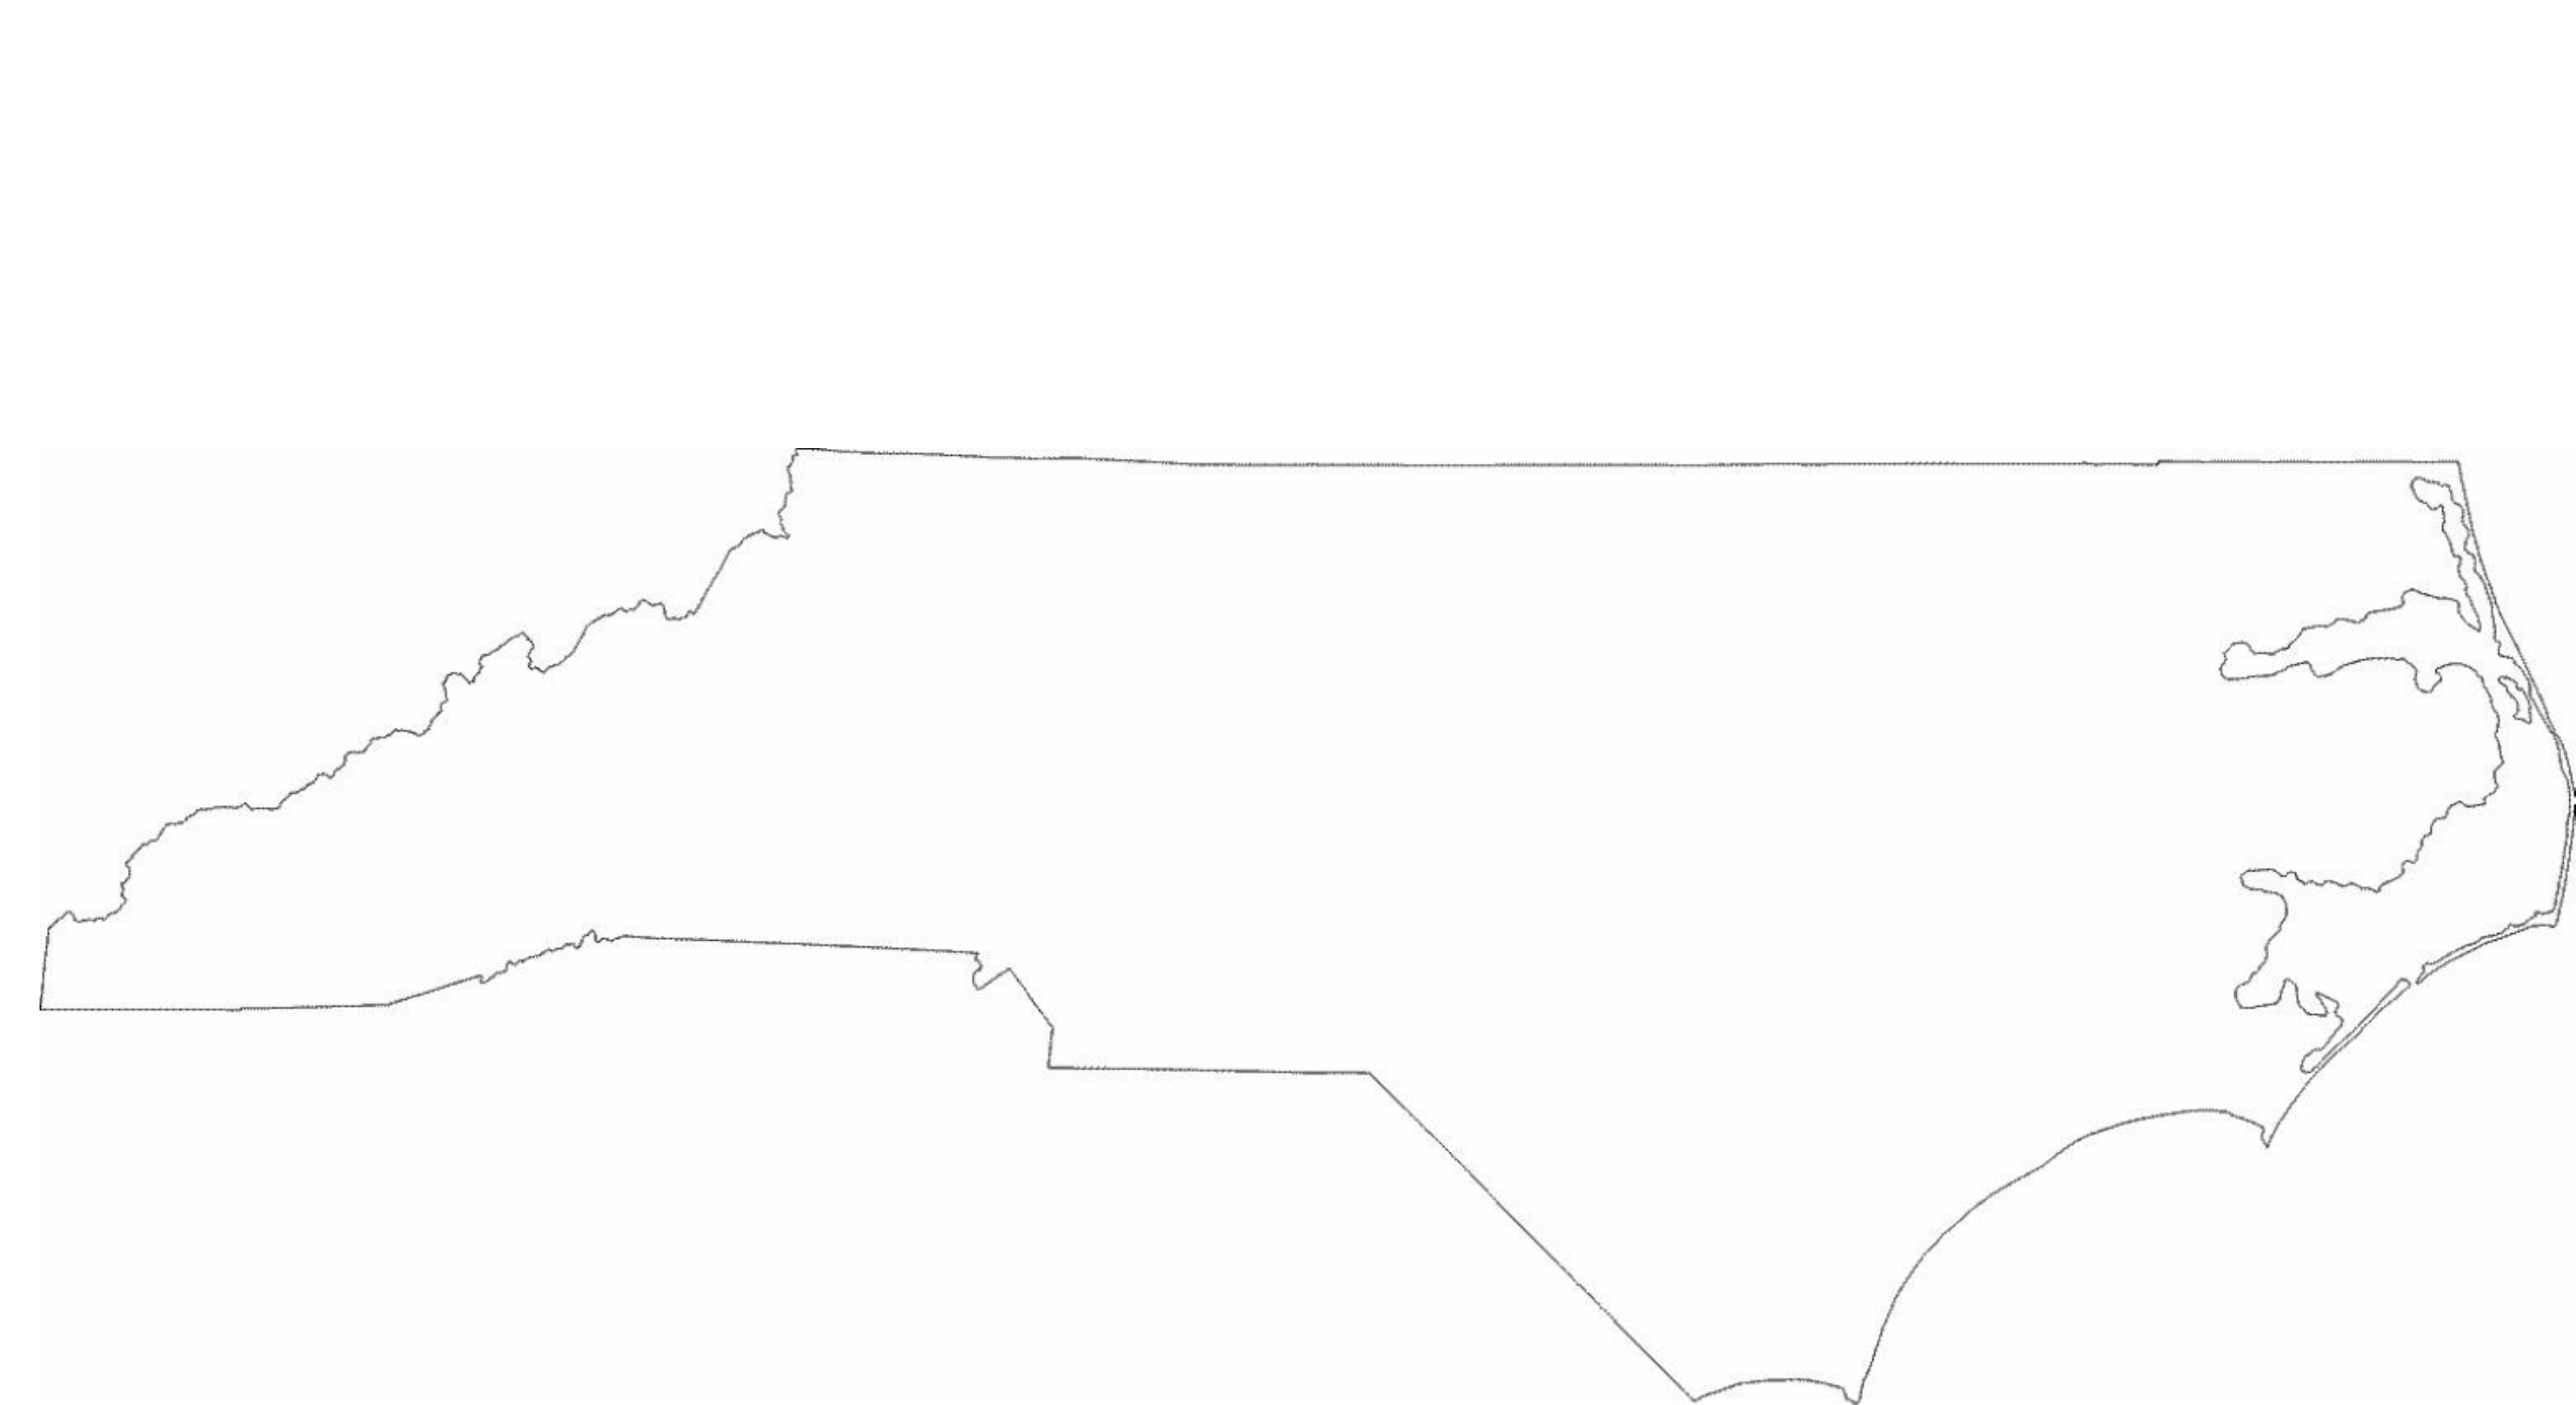 image united states map outline with Free North Carolina State Outline Map on Where Is Zadar besides Afghreg in addition Dcpublichealth also Stock Illustration Medicine Background Nurse Medical Lab Equipments Vector Illustration Outline Style Image56824991 furthermore Free South Carolina State Outline Map.